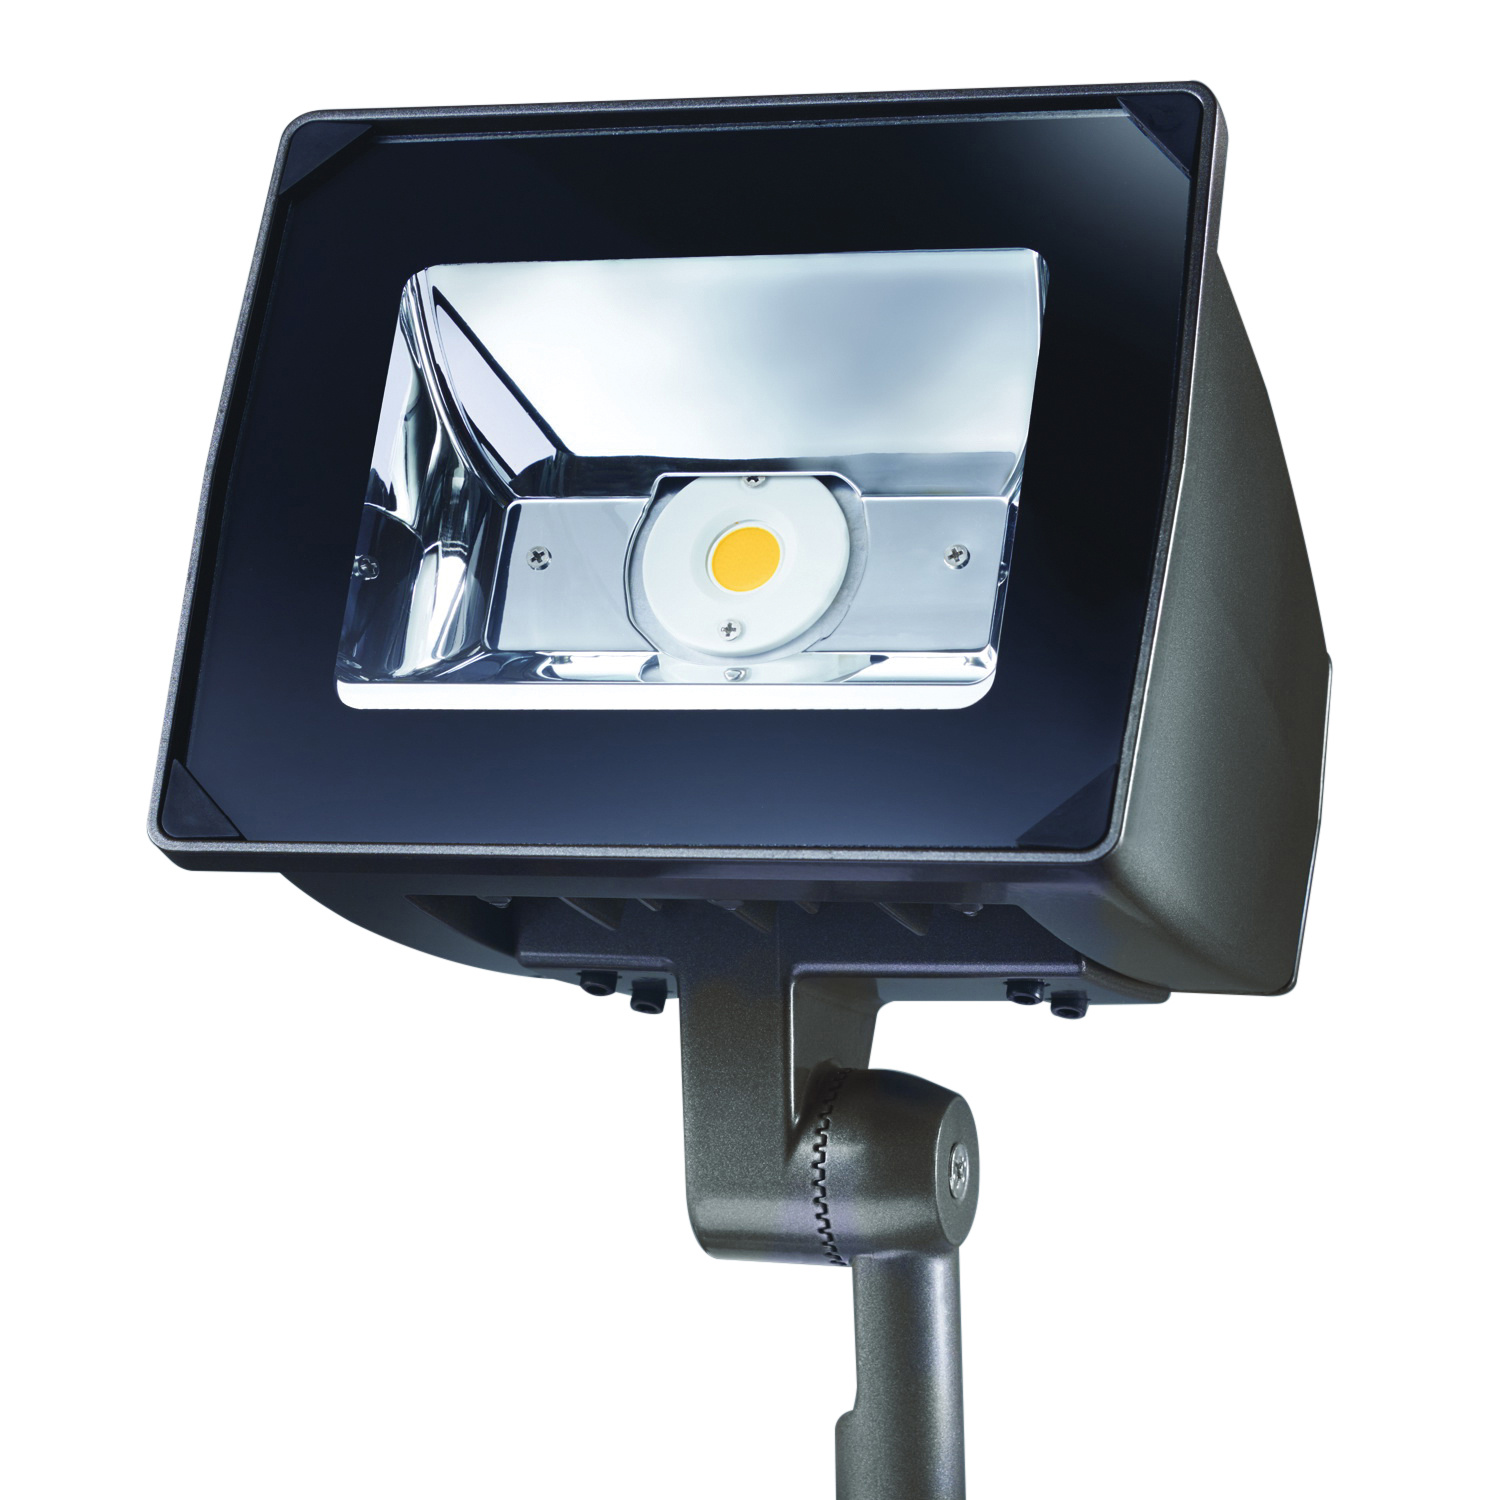 Cooper Lighting NFFLD-S-C15-KNC-UNV LED Flood Light Fixture 51 Watt 120 - 277 Volt 4000K Knuckle Mount TGIC Polyester Powder Coated Lumark®